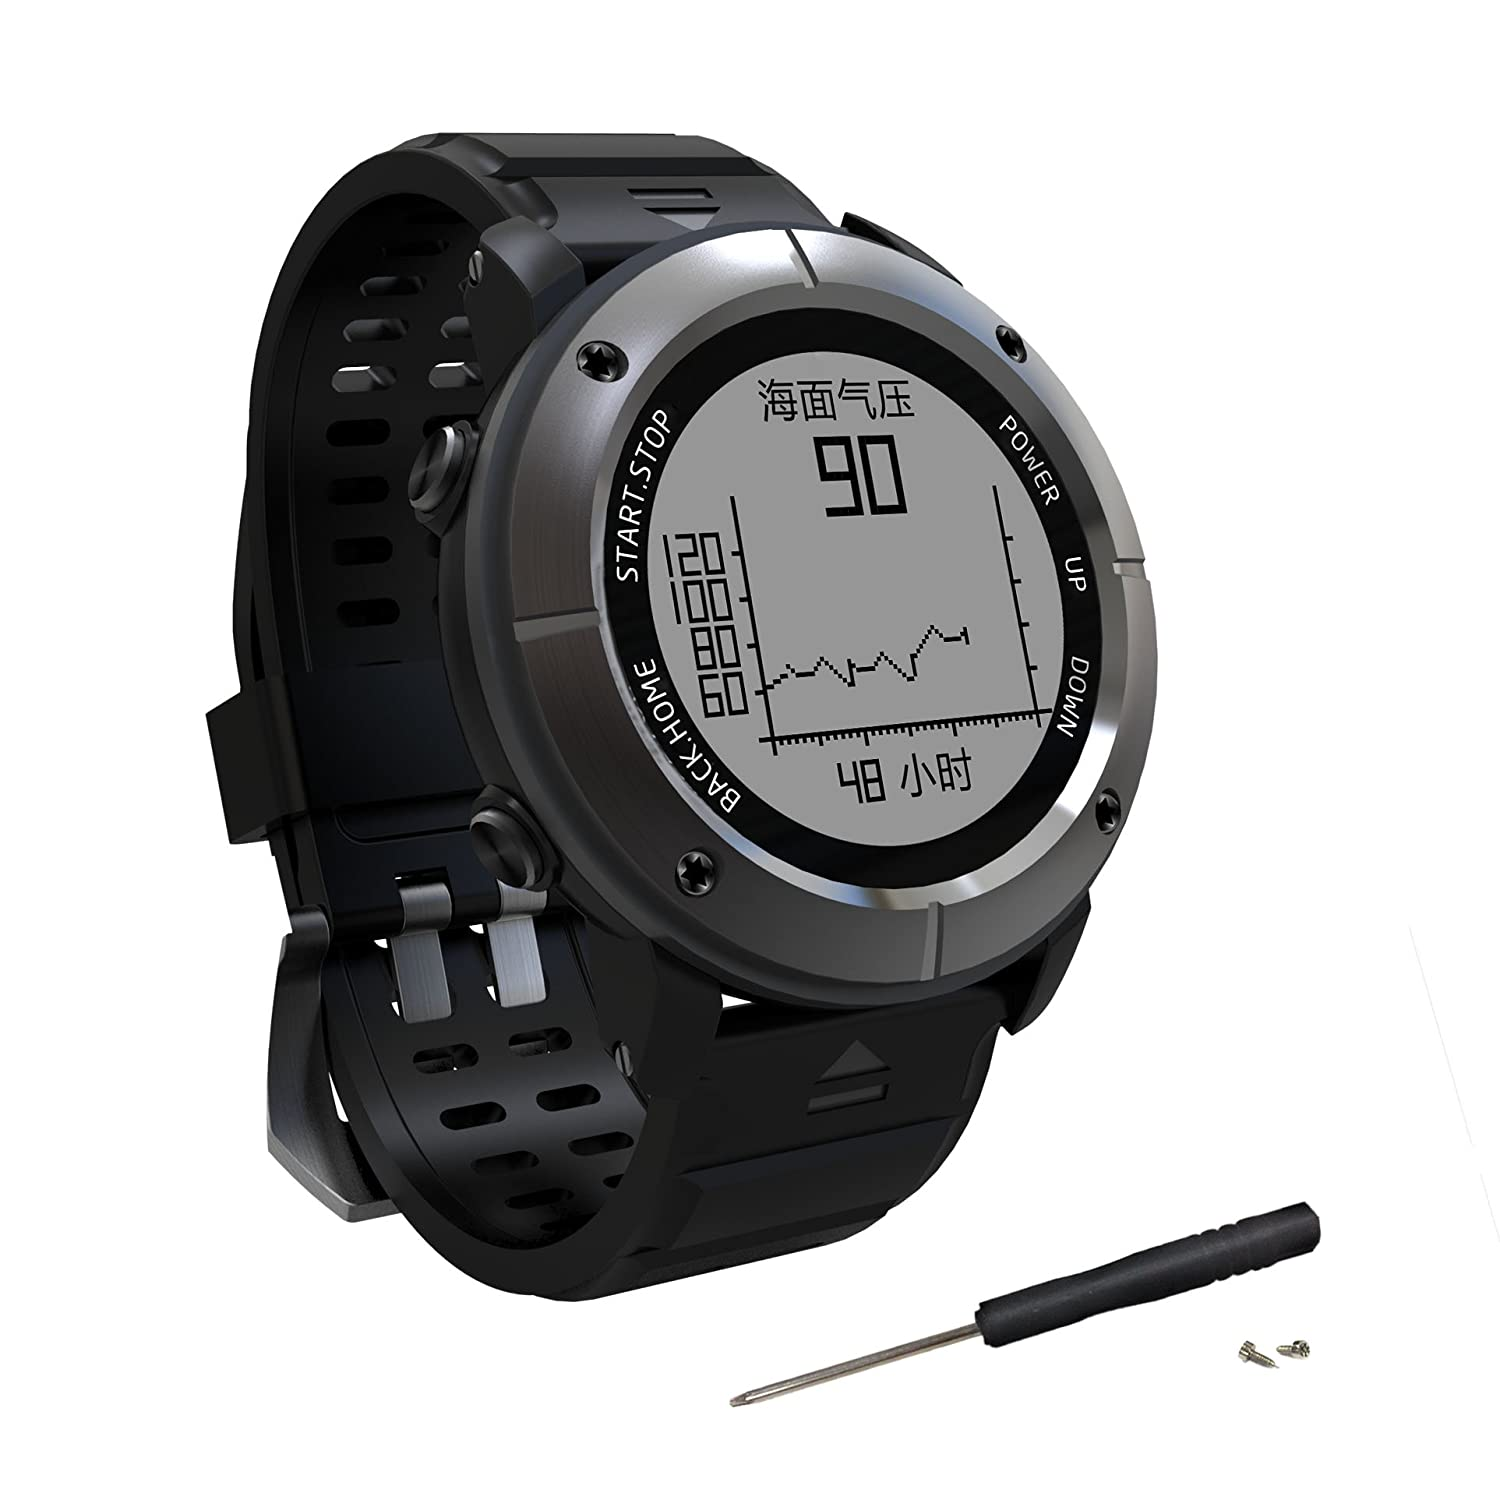 GPS Hiking Smart Watch,Adventurer Outdoor Sports Waterproof Watch,Multi-Function Mode,for Tracking Running,Hiking,Heart Rate Monitor,SOS,Compass,Watch ...